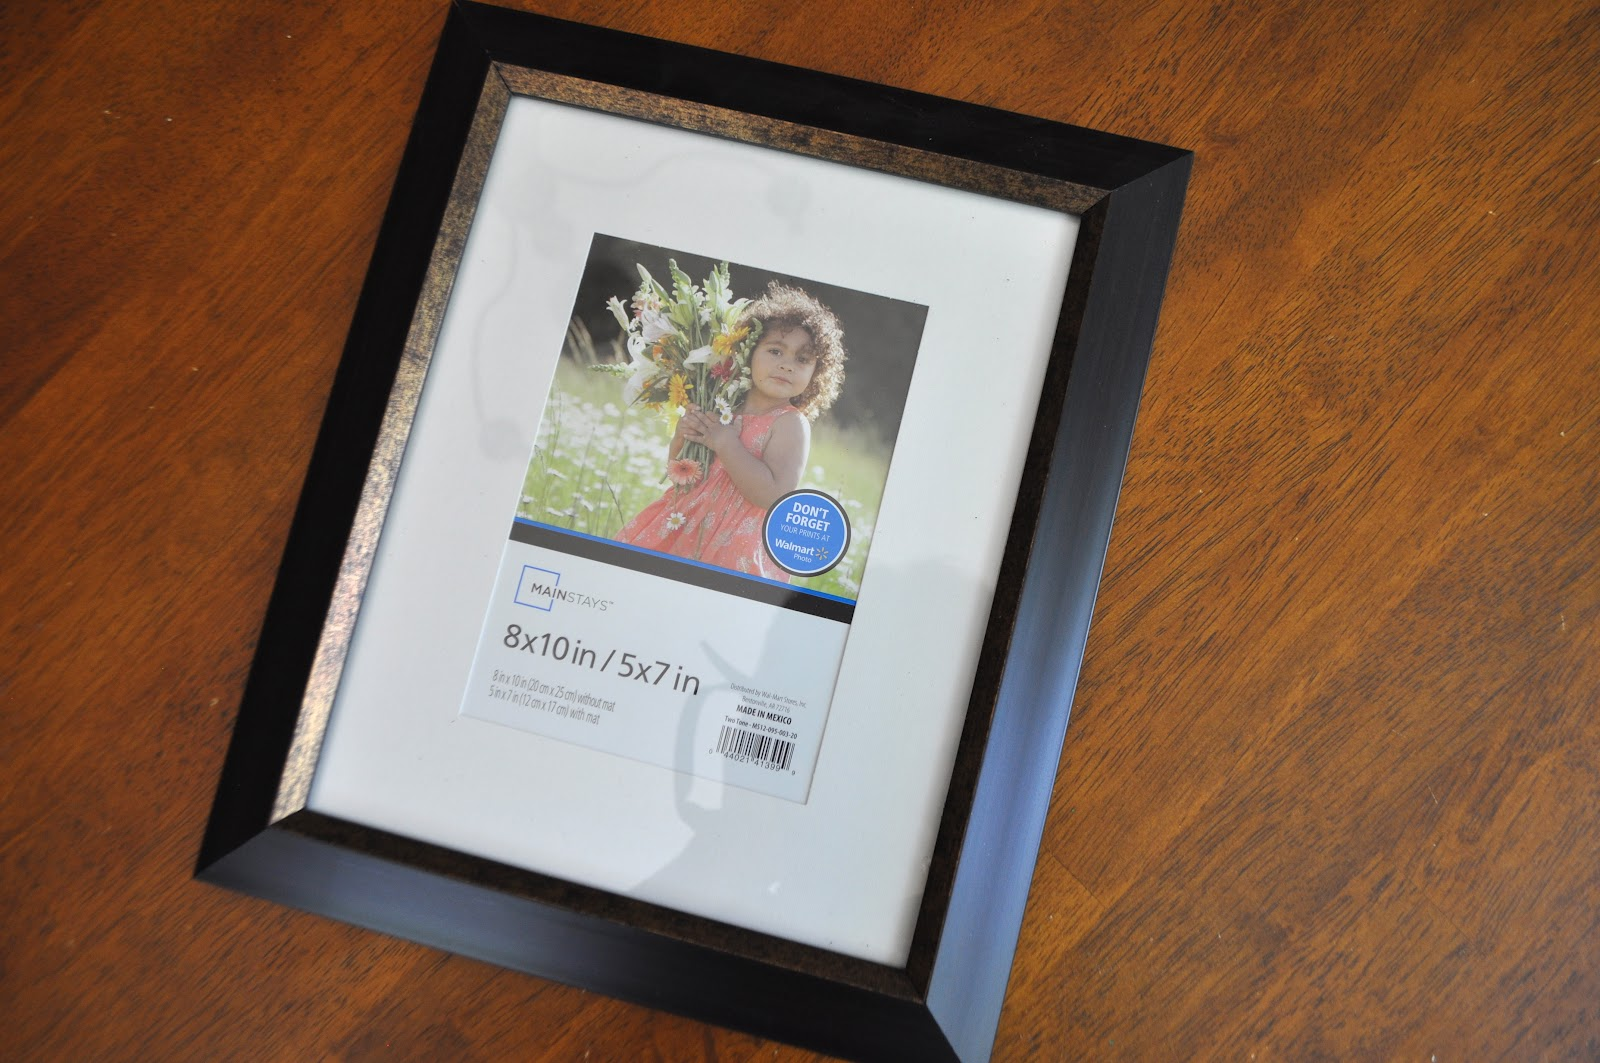 i printed up the photos at costco 150 for 8x10s i used fabric scraps for some of the frames as well